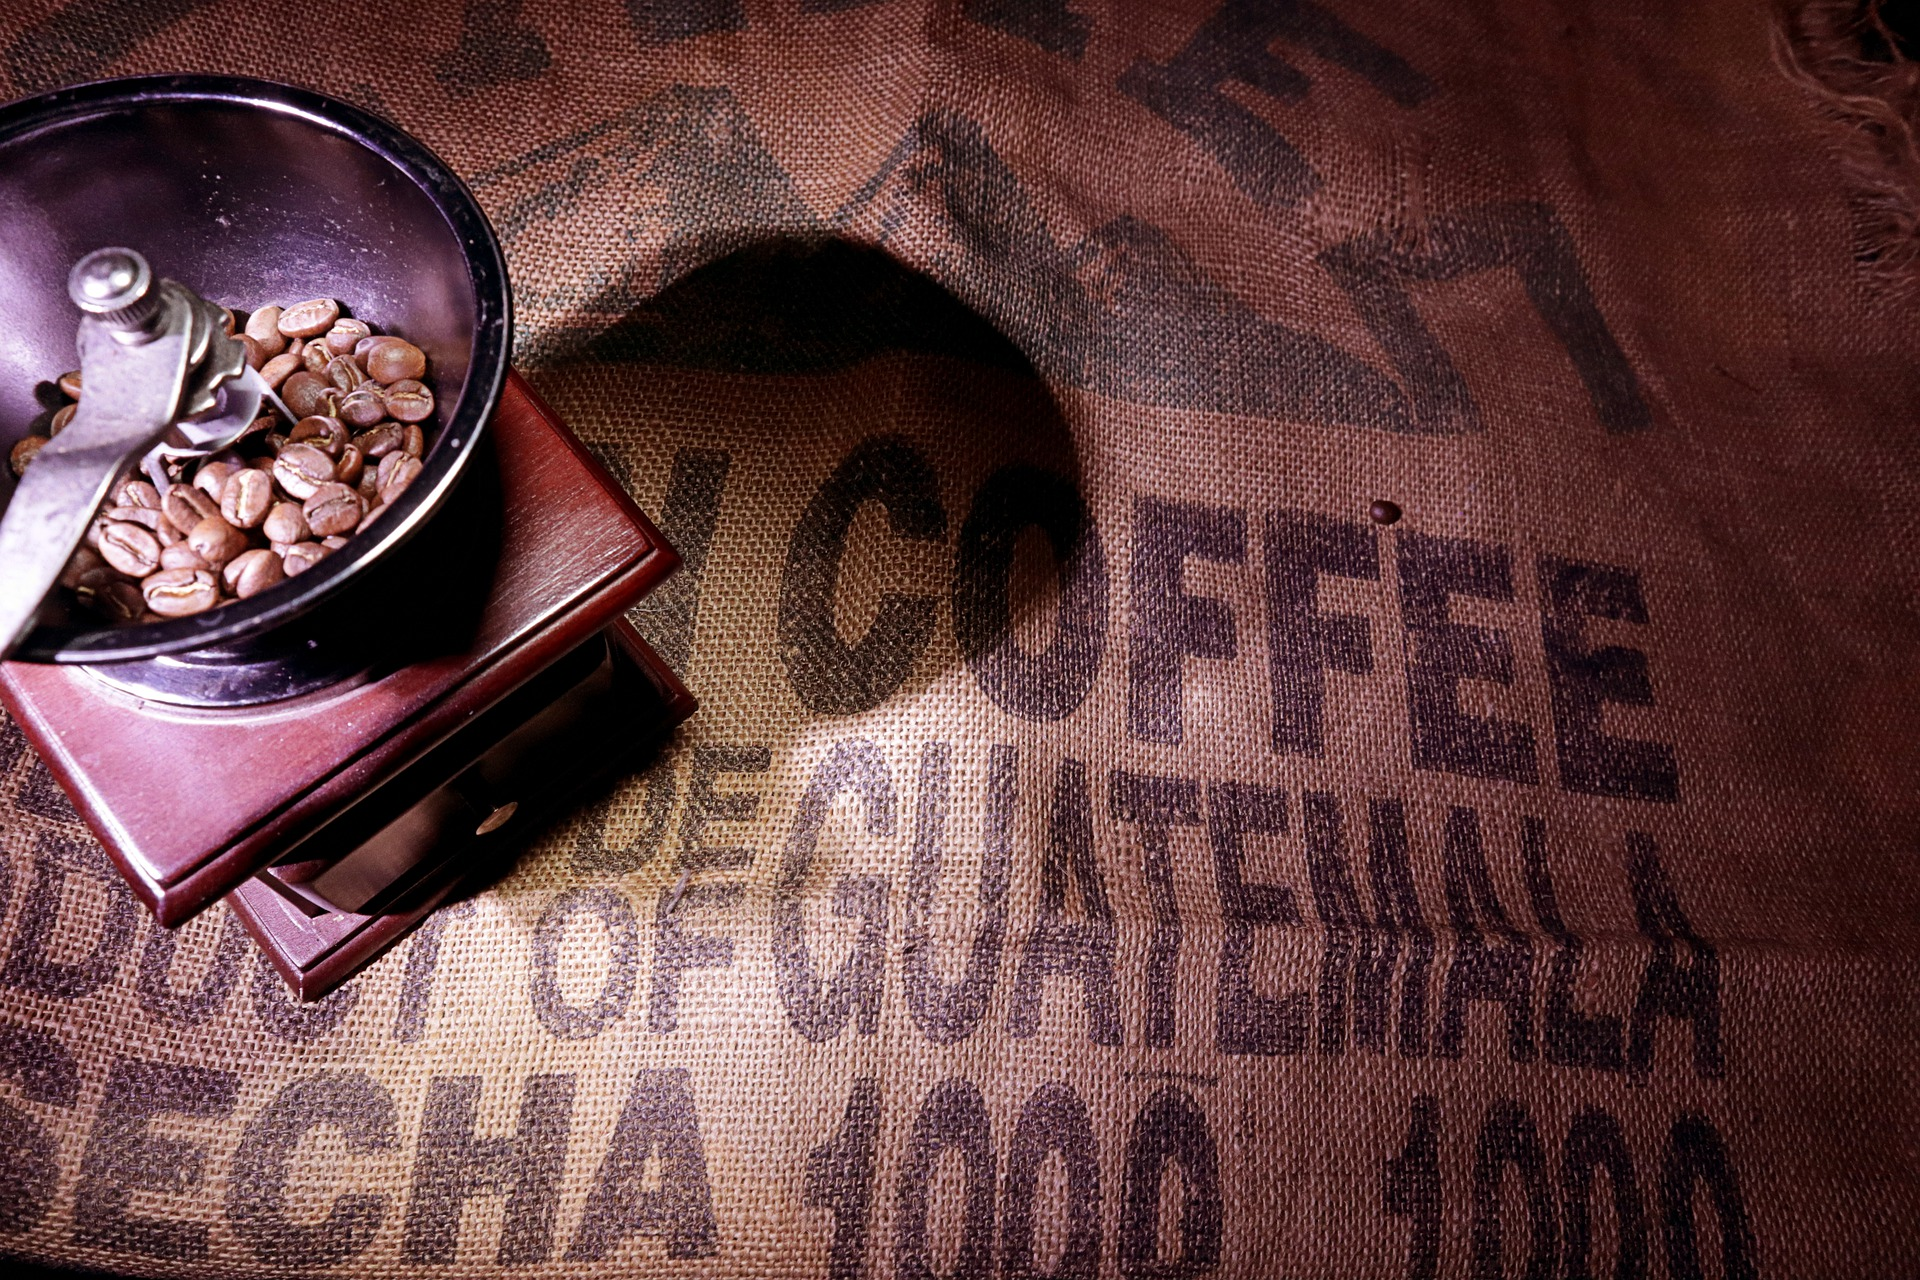 bag of coffee beans from guatemala